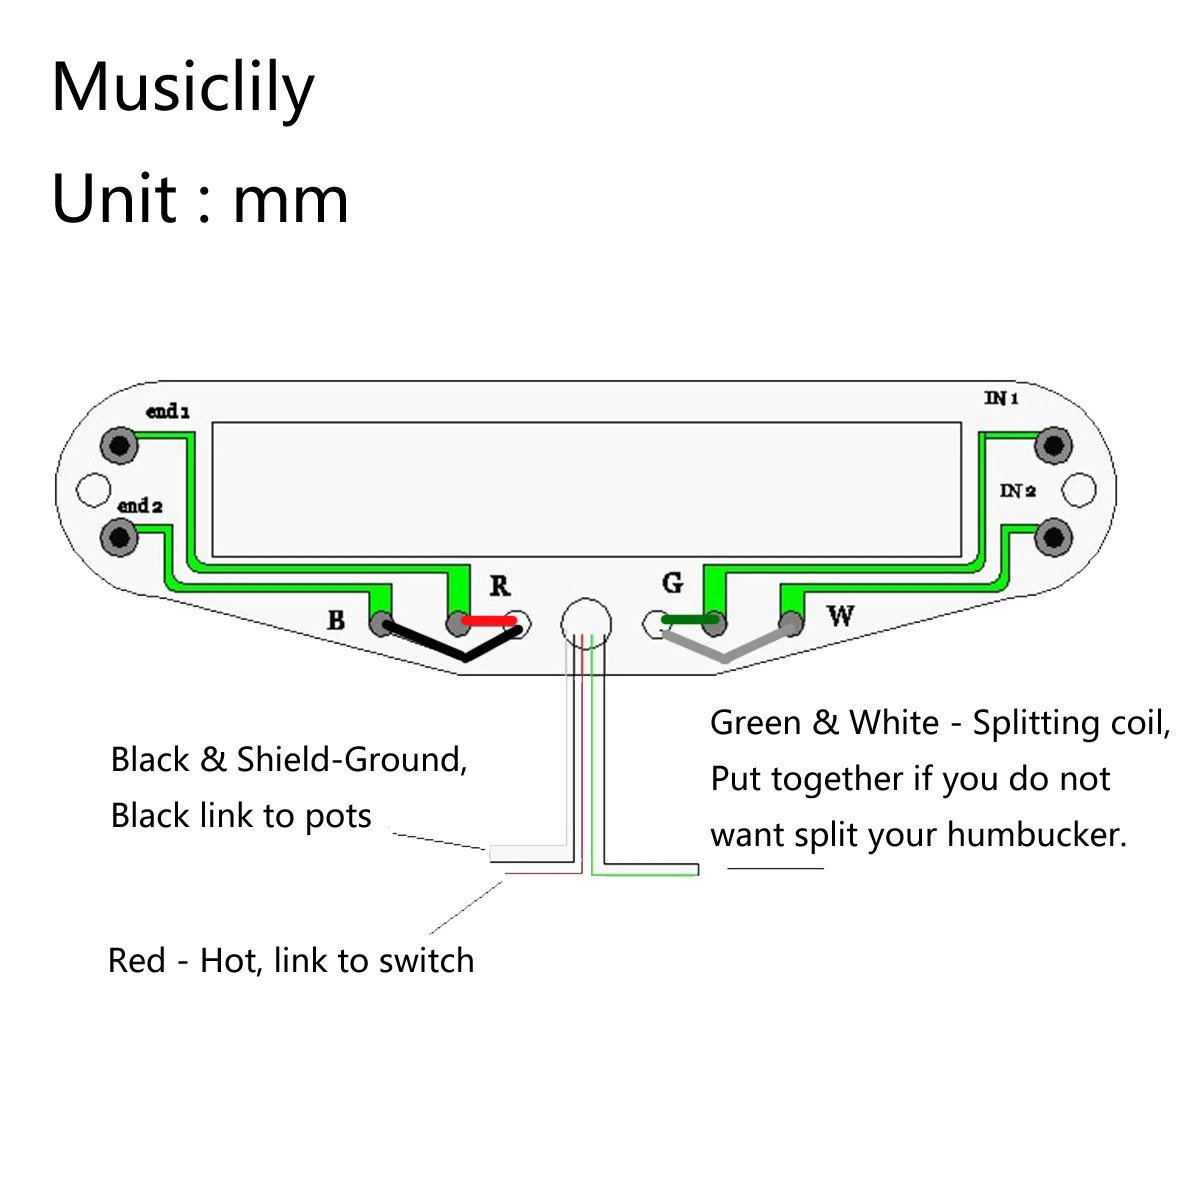 3 Wire Guitar Pickup Wiring Diagram Not Lossing Triple Hot Rail Diagrams Hotrail One 31 Images Basic 1 Way Switch